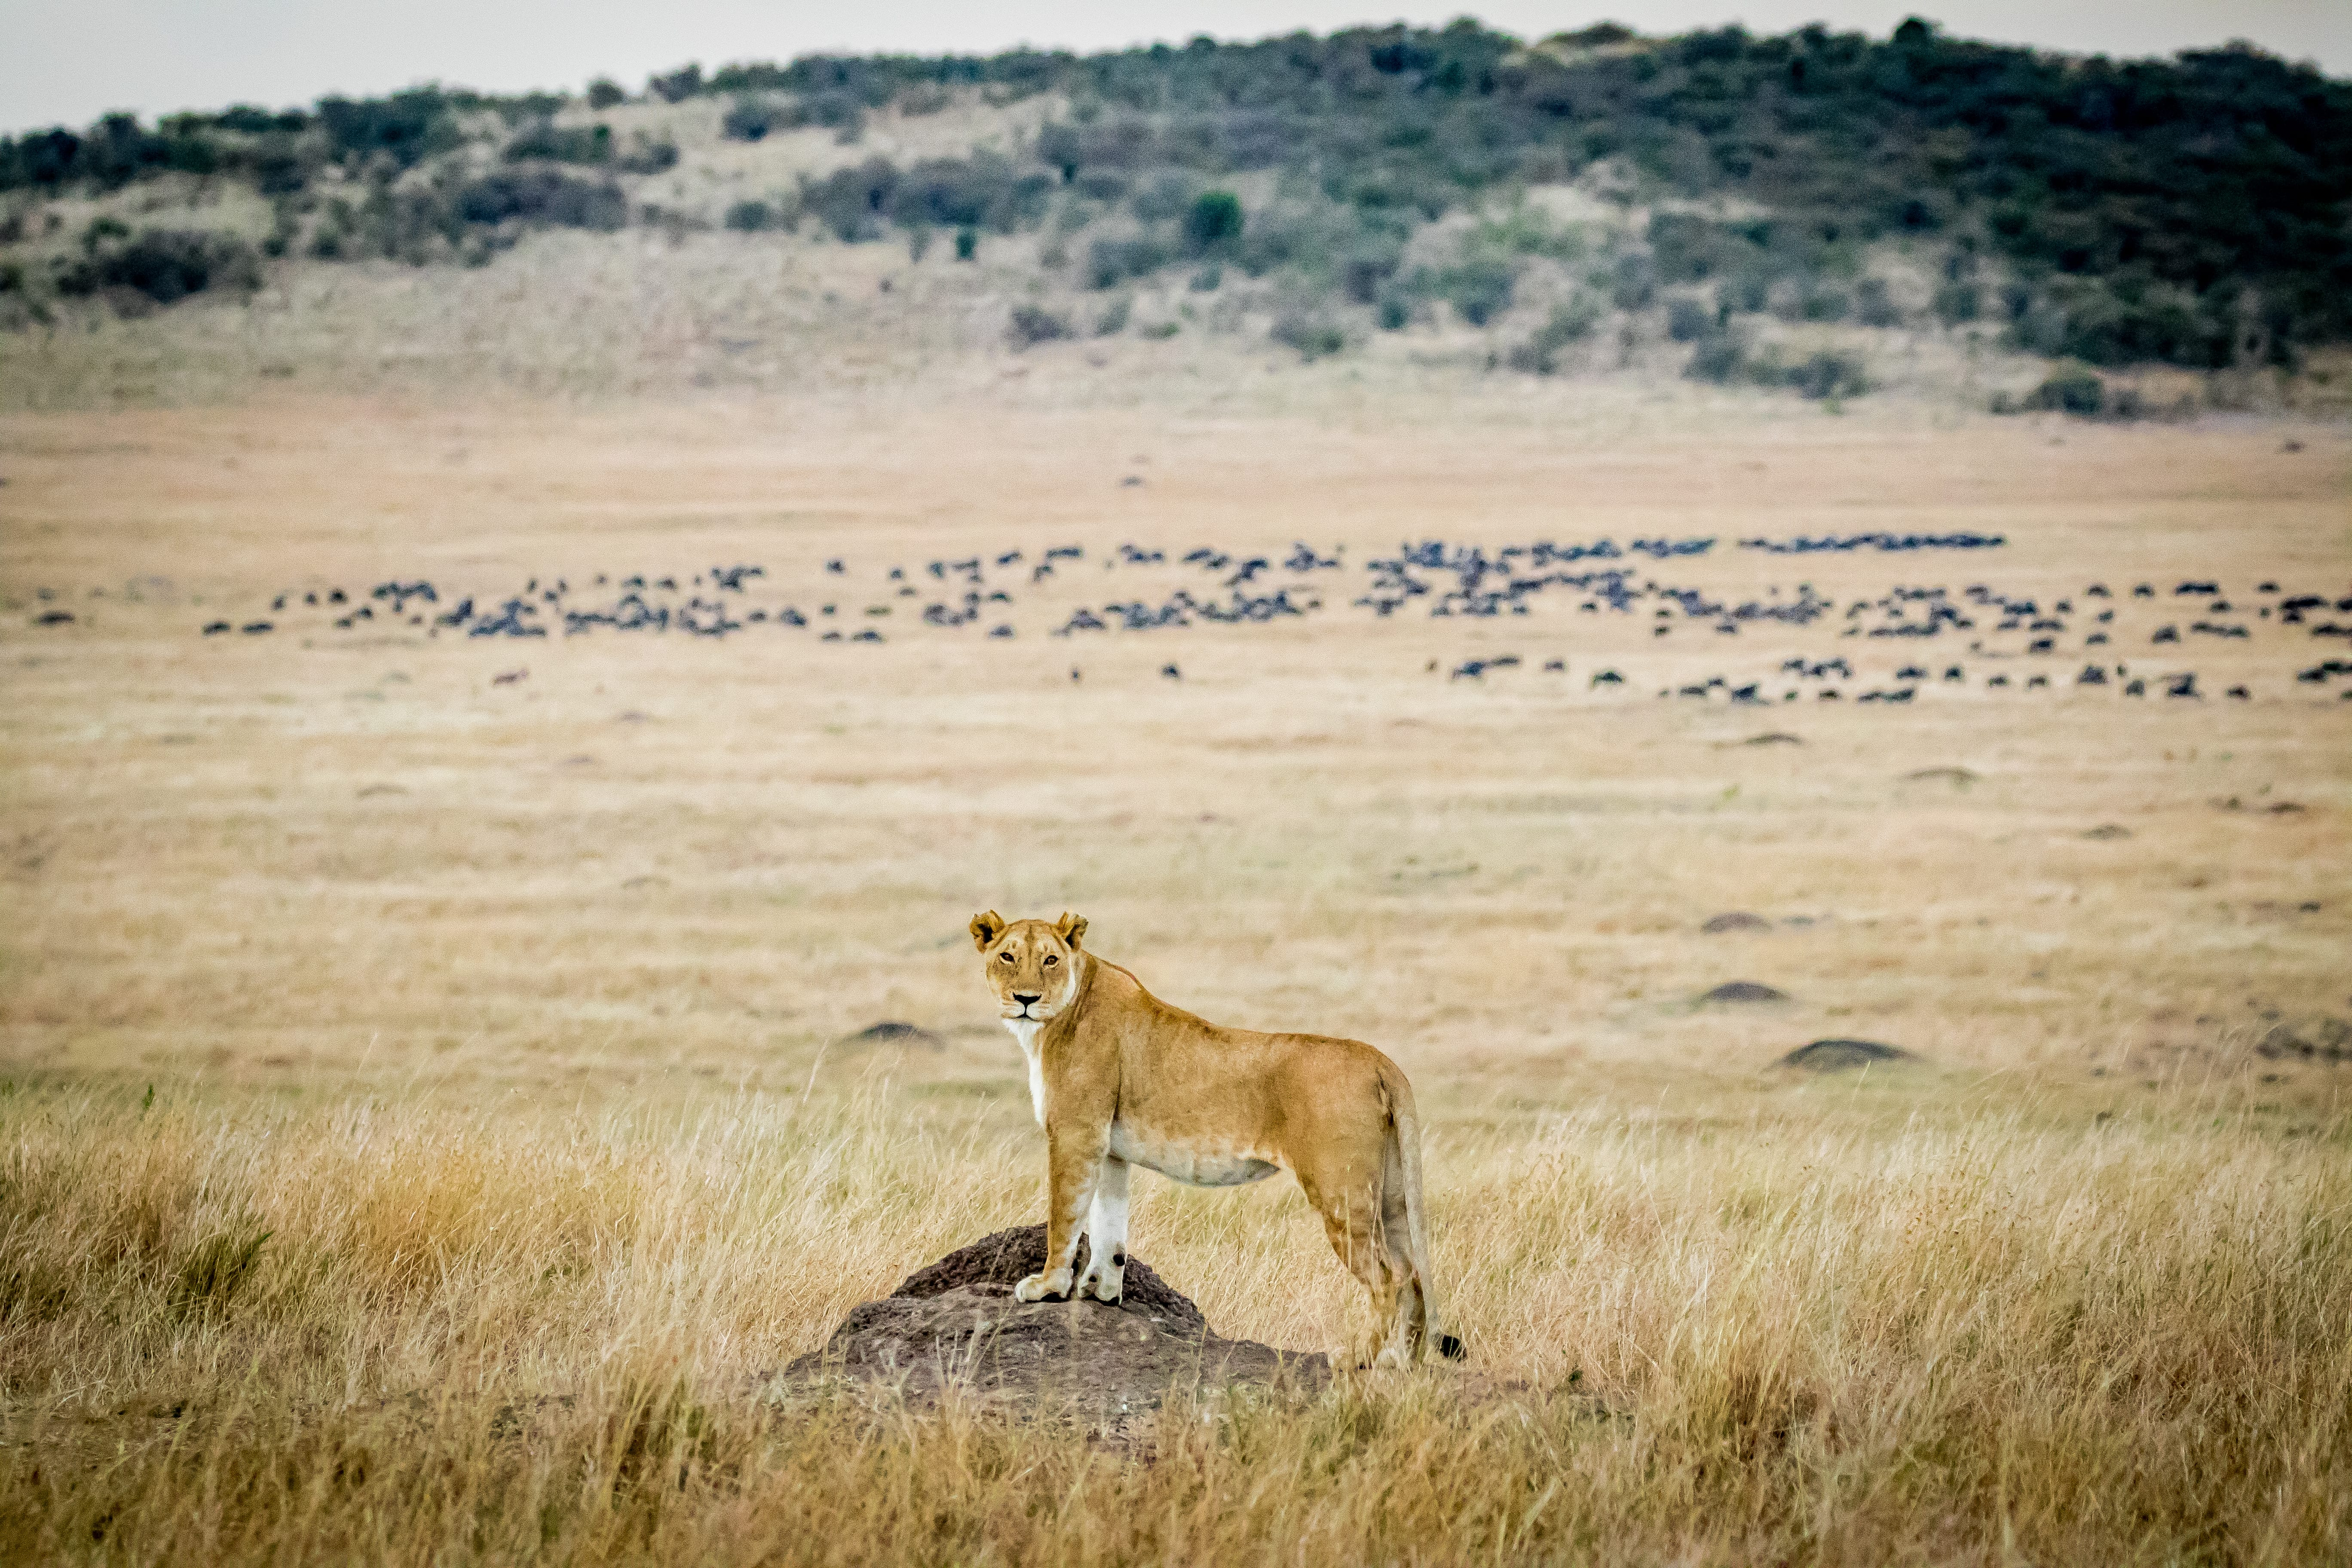 Lion on the plains of Africa